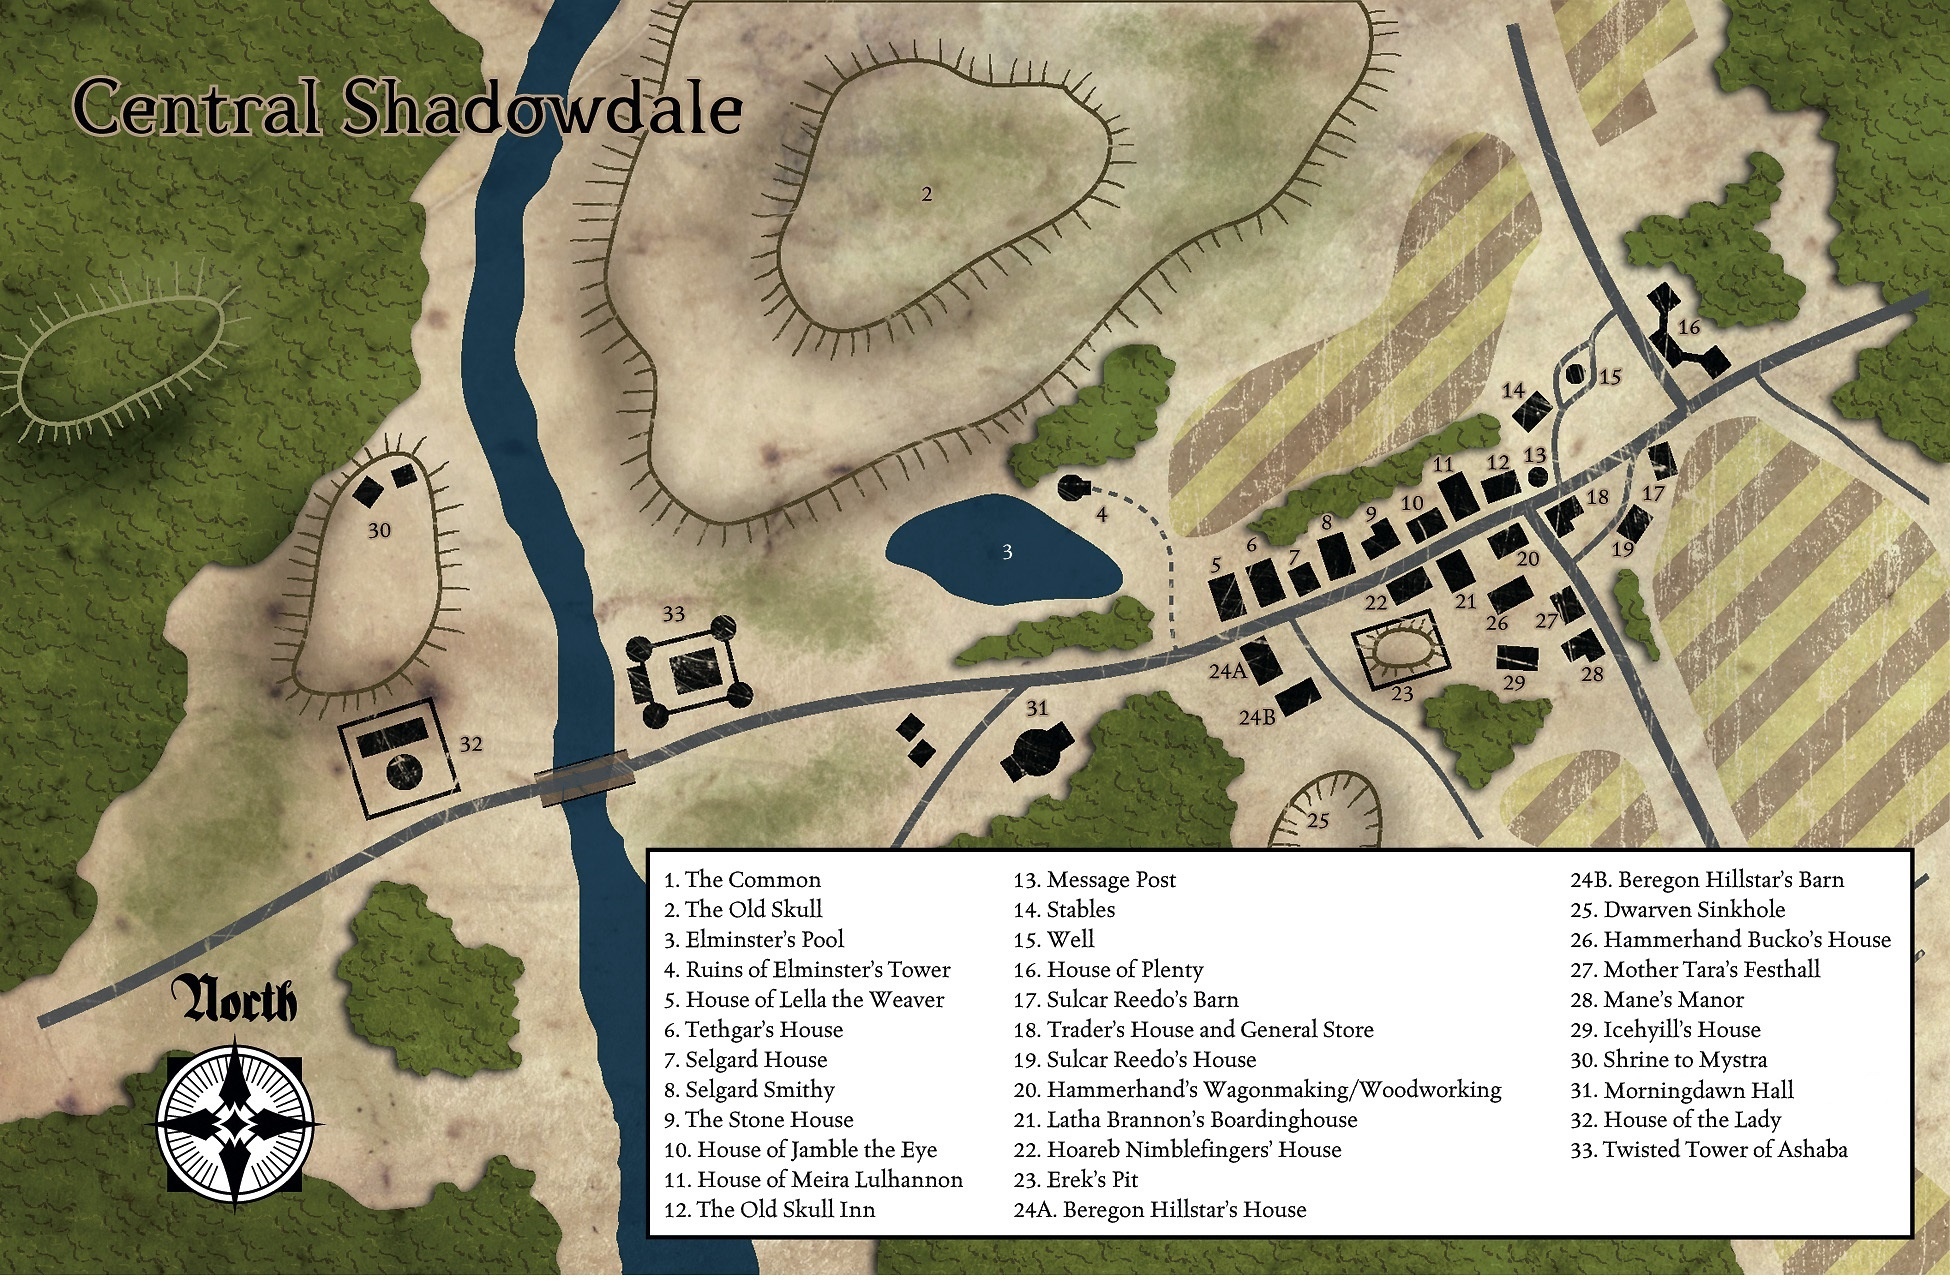 Central Shadowdale (or the Village of Shadowdale)